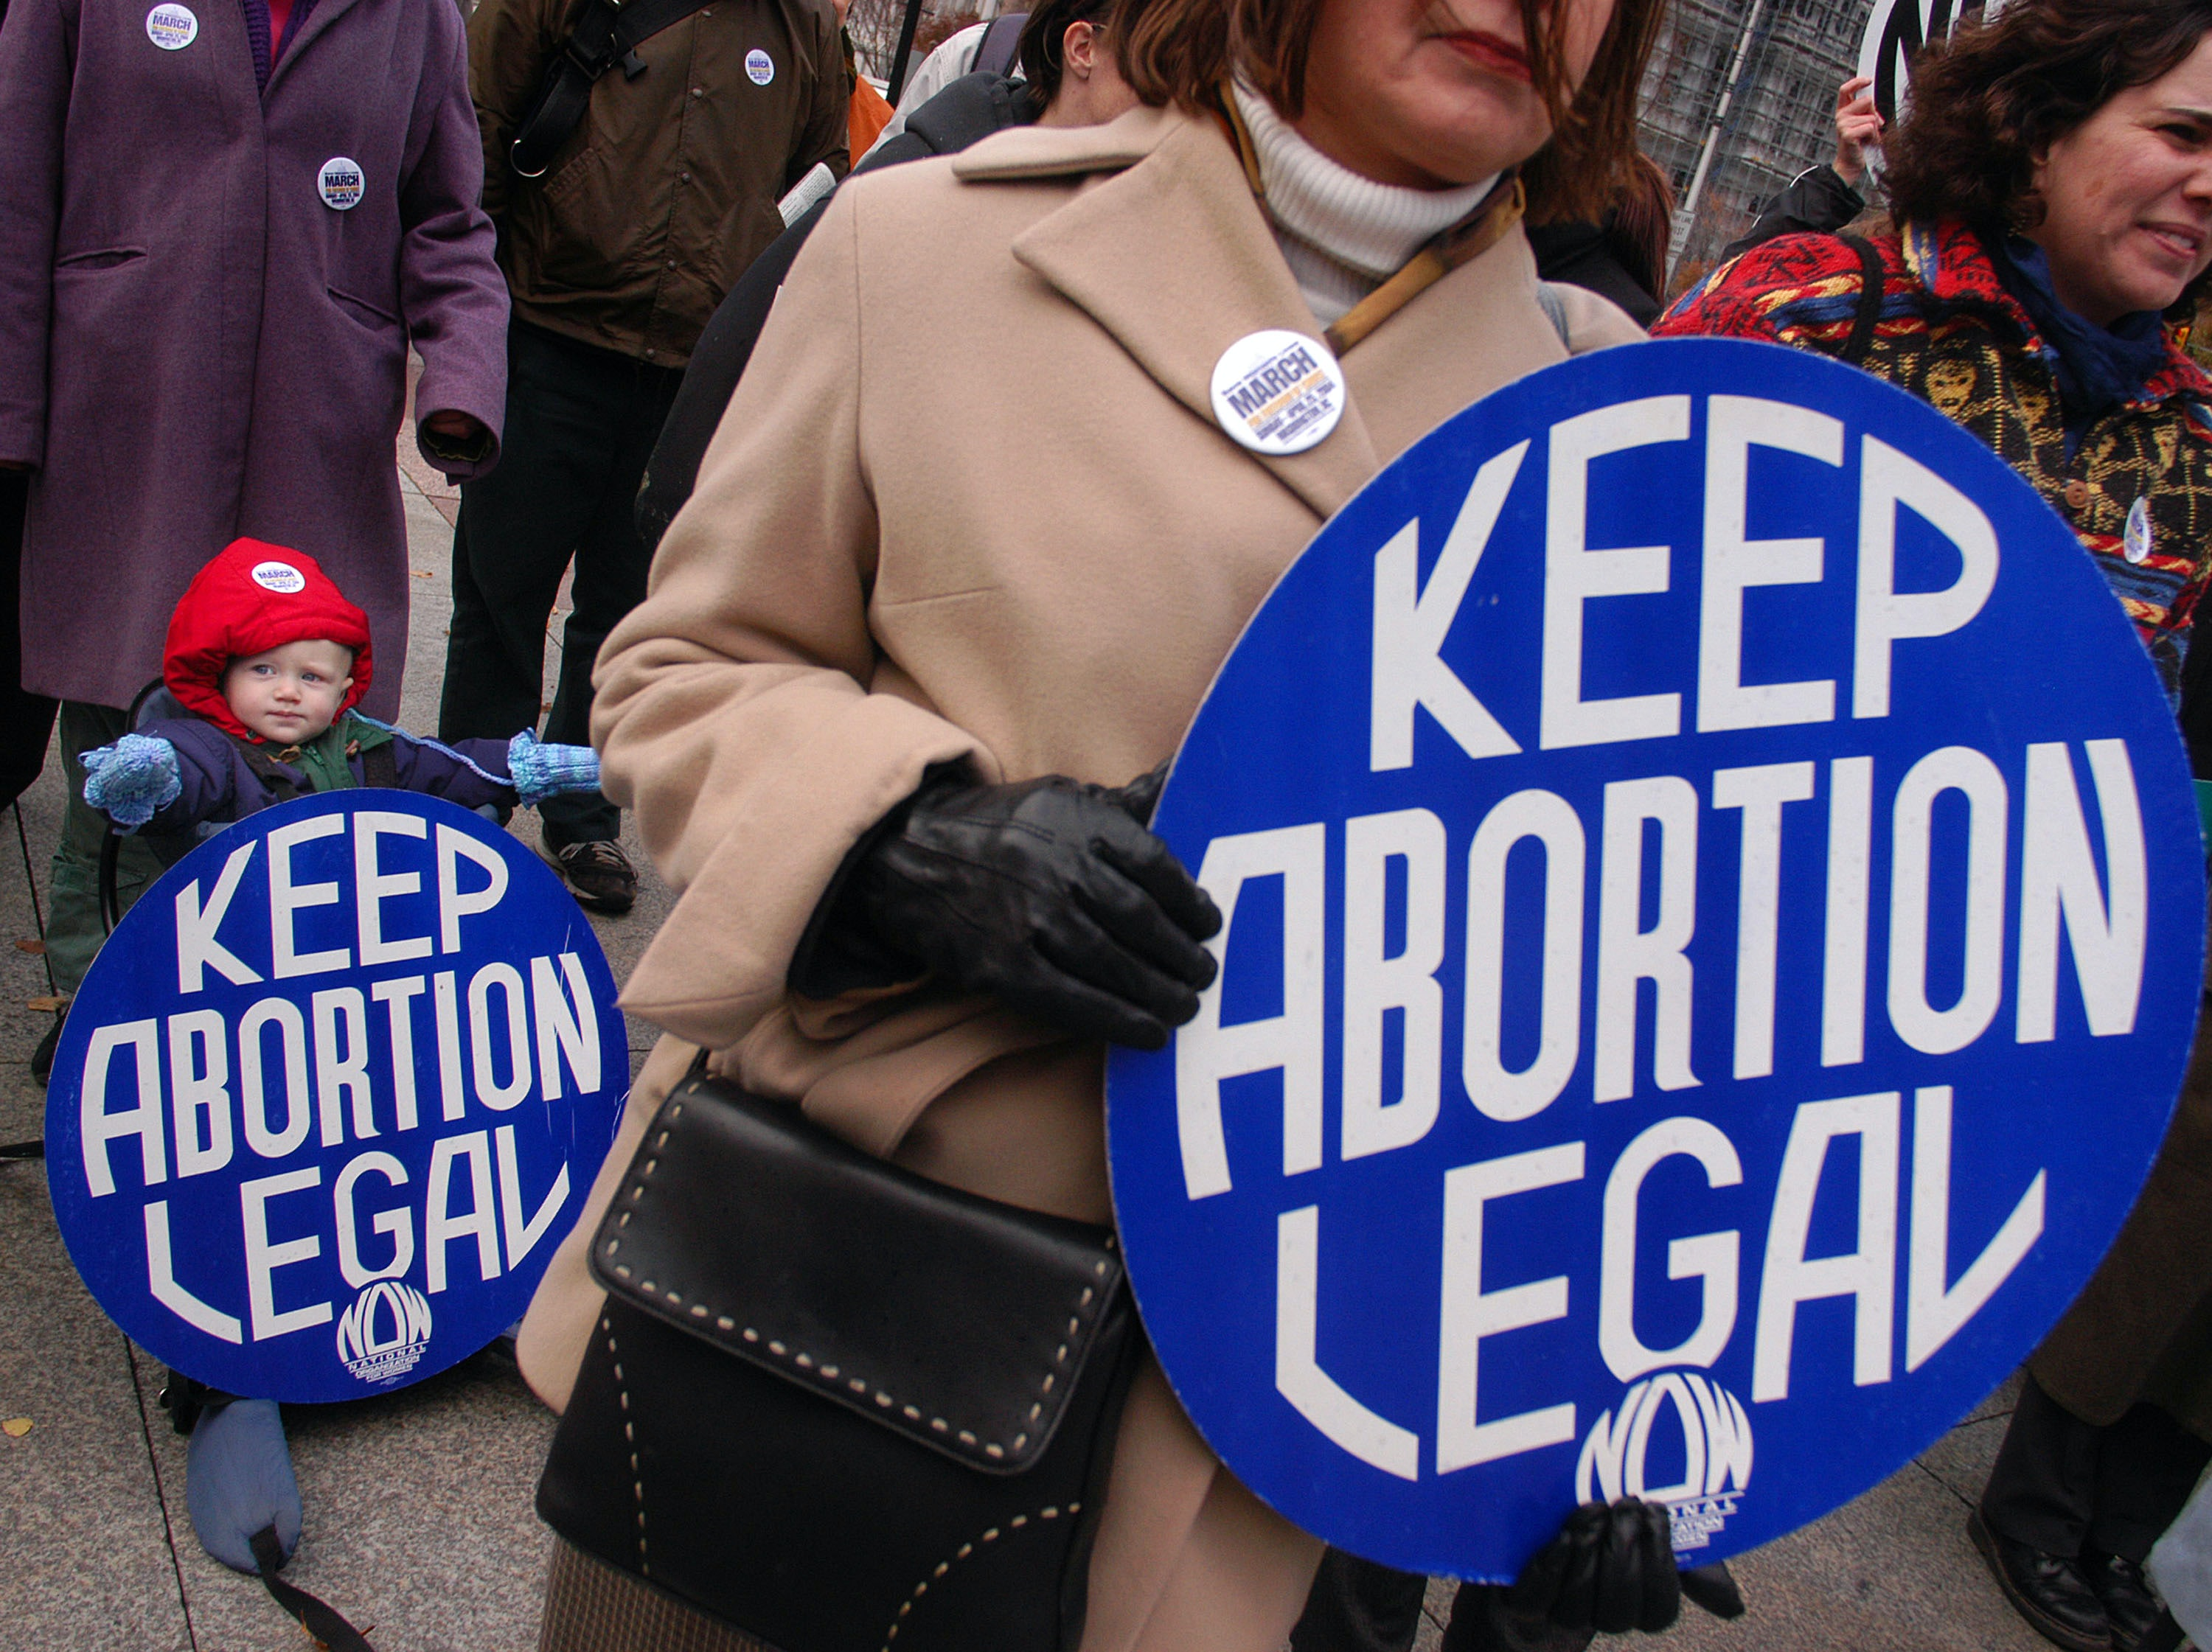 Agency: 2 Immigrants Can Leave US For Abortion